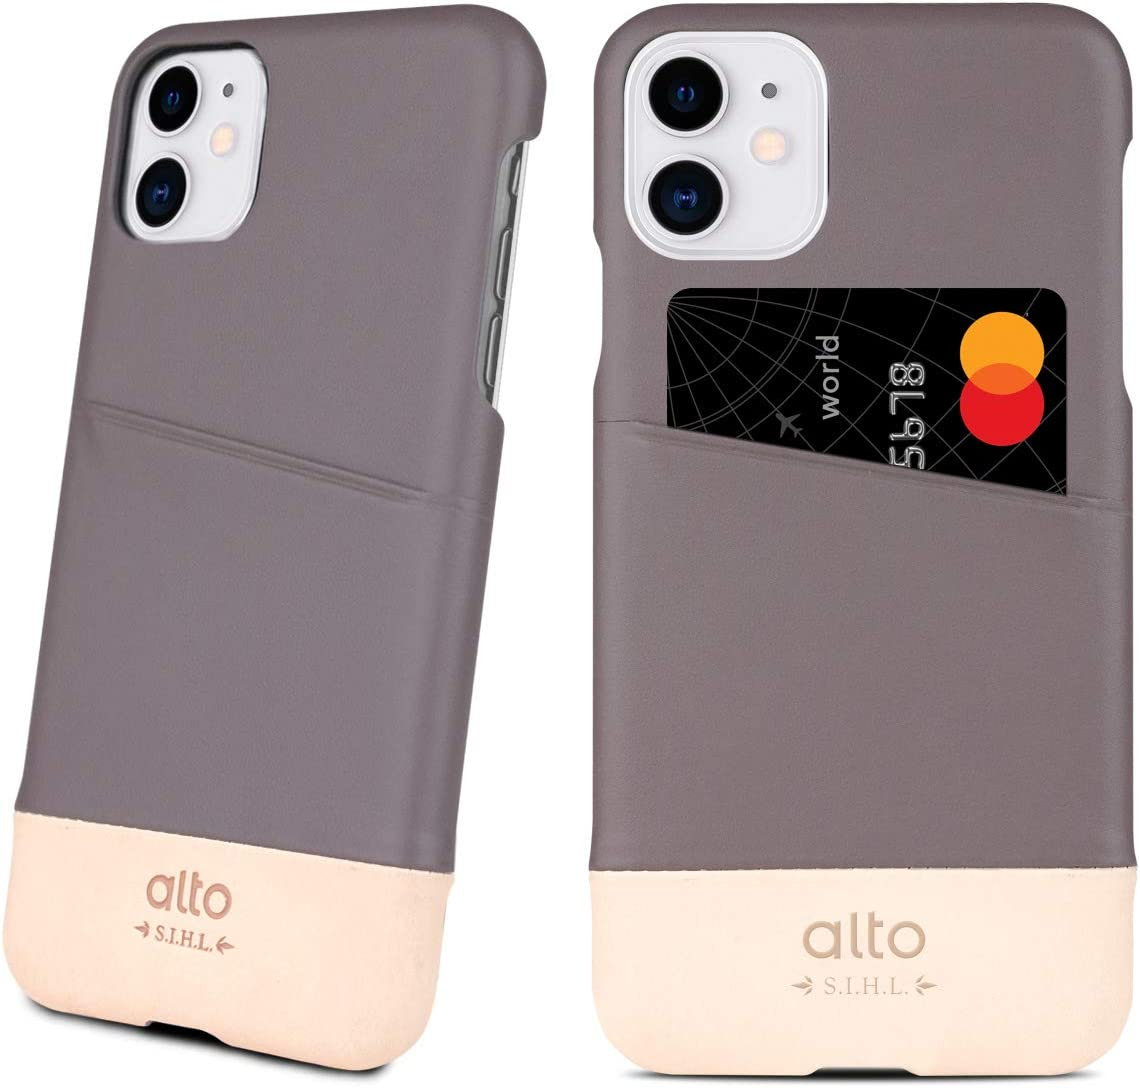 Alto Metro Leather Case for iPhone 11 Pro (5.8 inch), Premium Italian Leather Wallet Case with Card Holder Design (Cement Grey/Original)